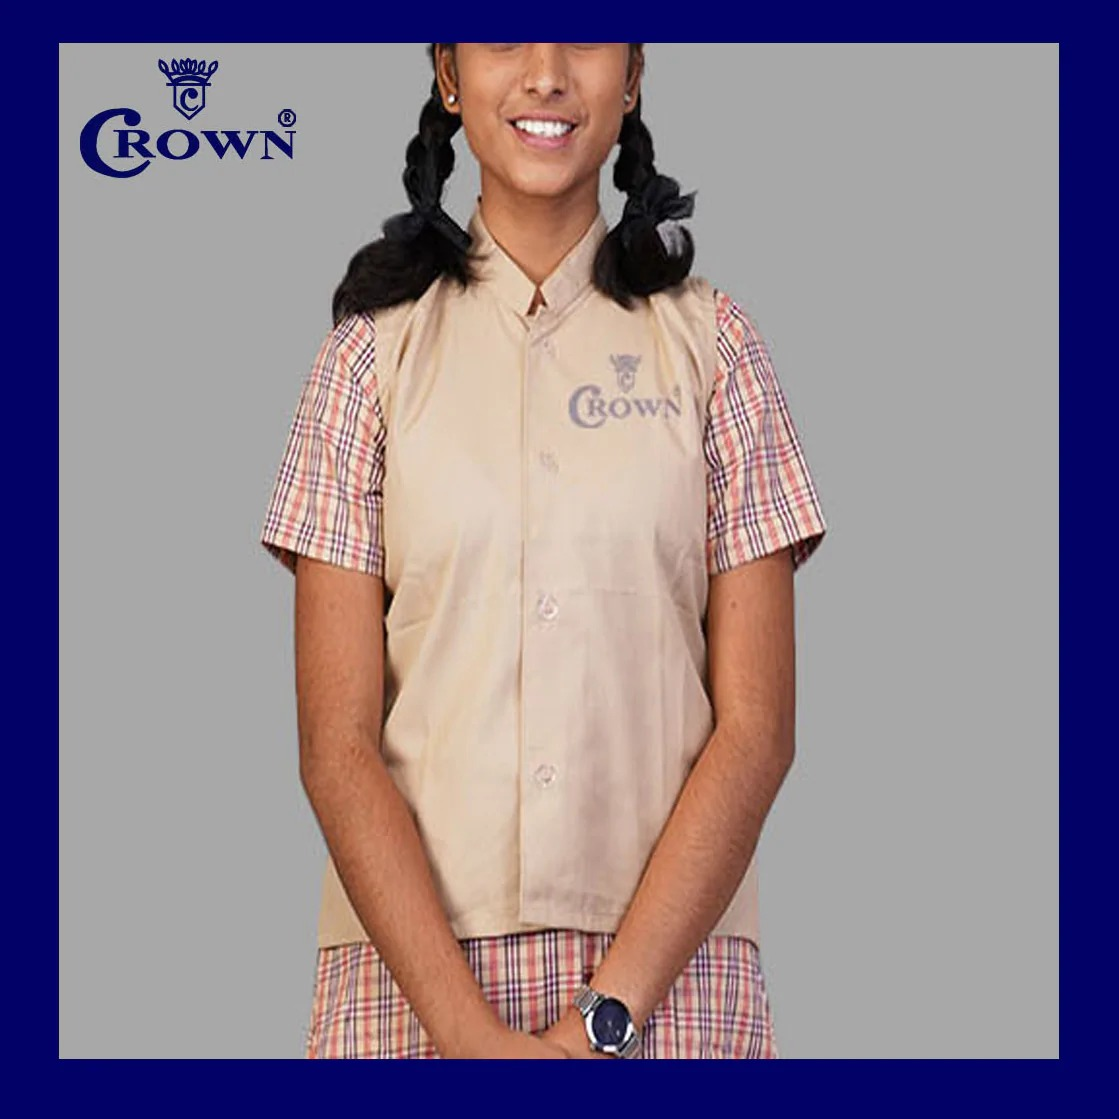 Crown TN Govt 6 - 8th Std Fawn Coat (16-17years)